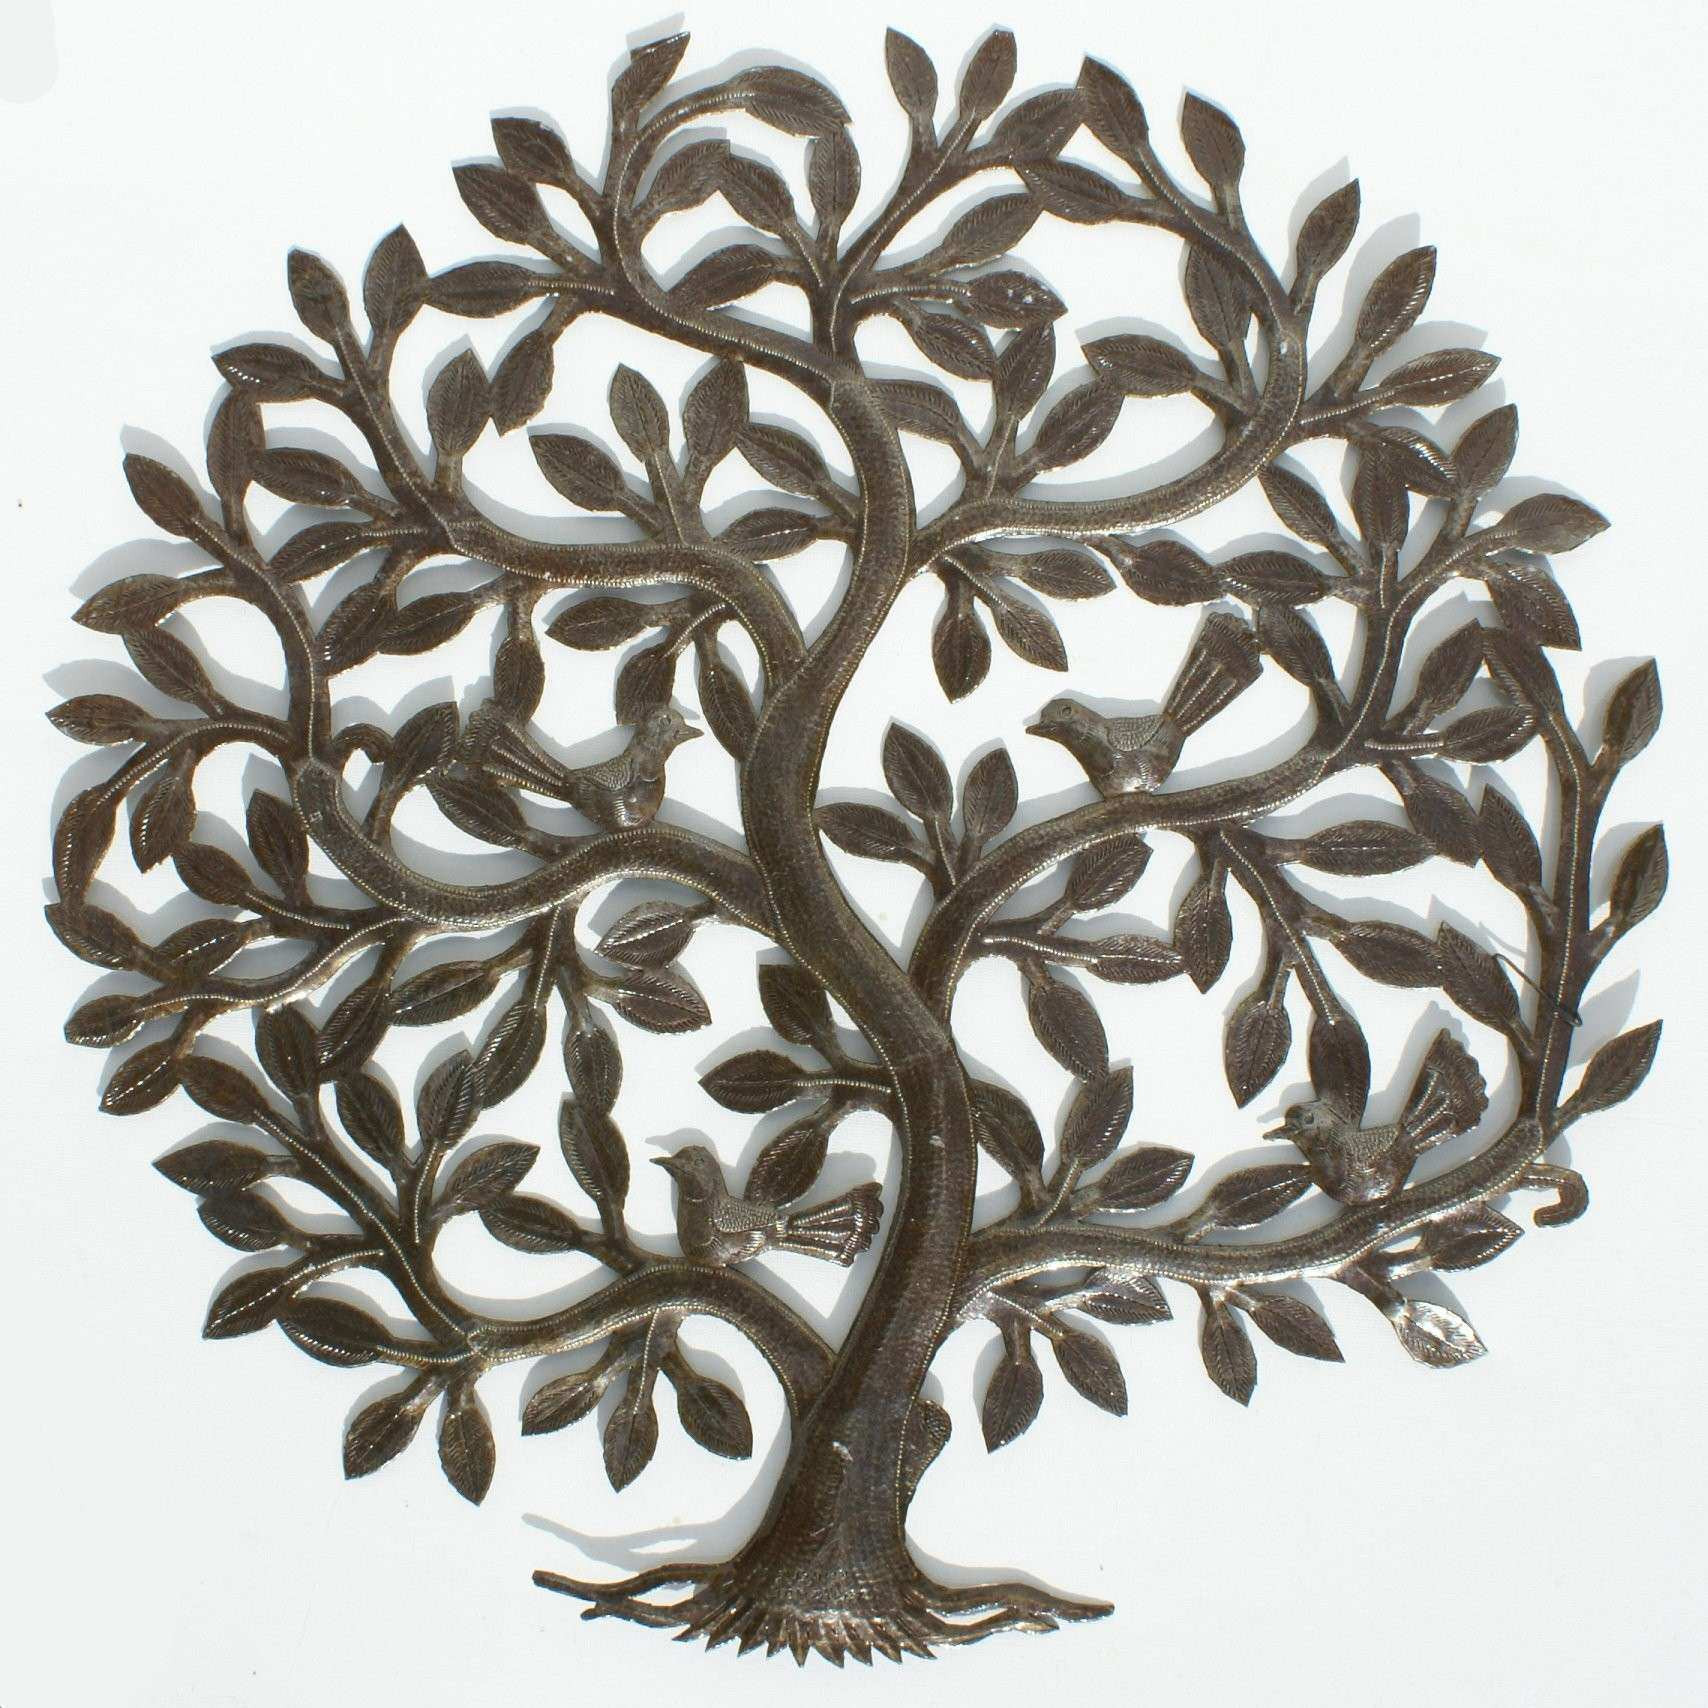 metal tree of life wall metal mural hanging art decor 60cm Fast Shipping within UK £56